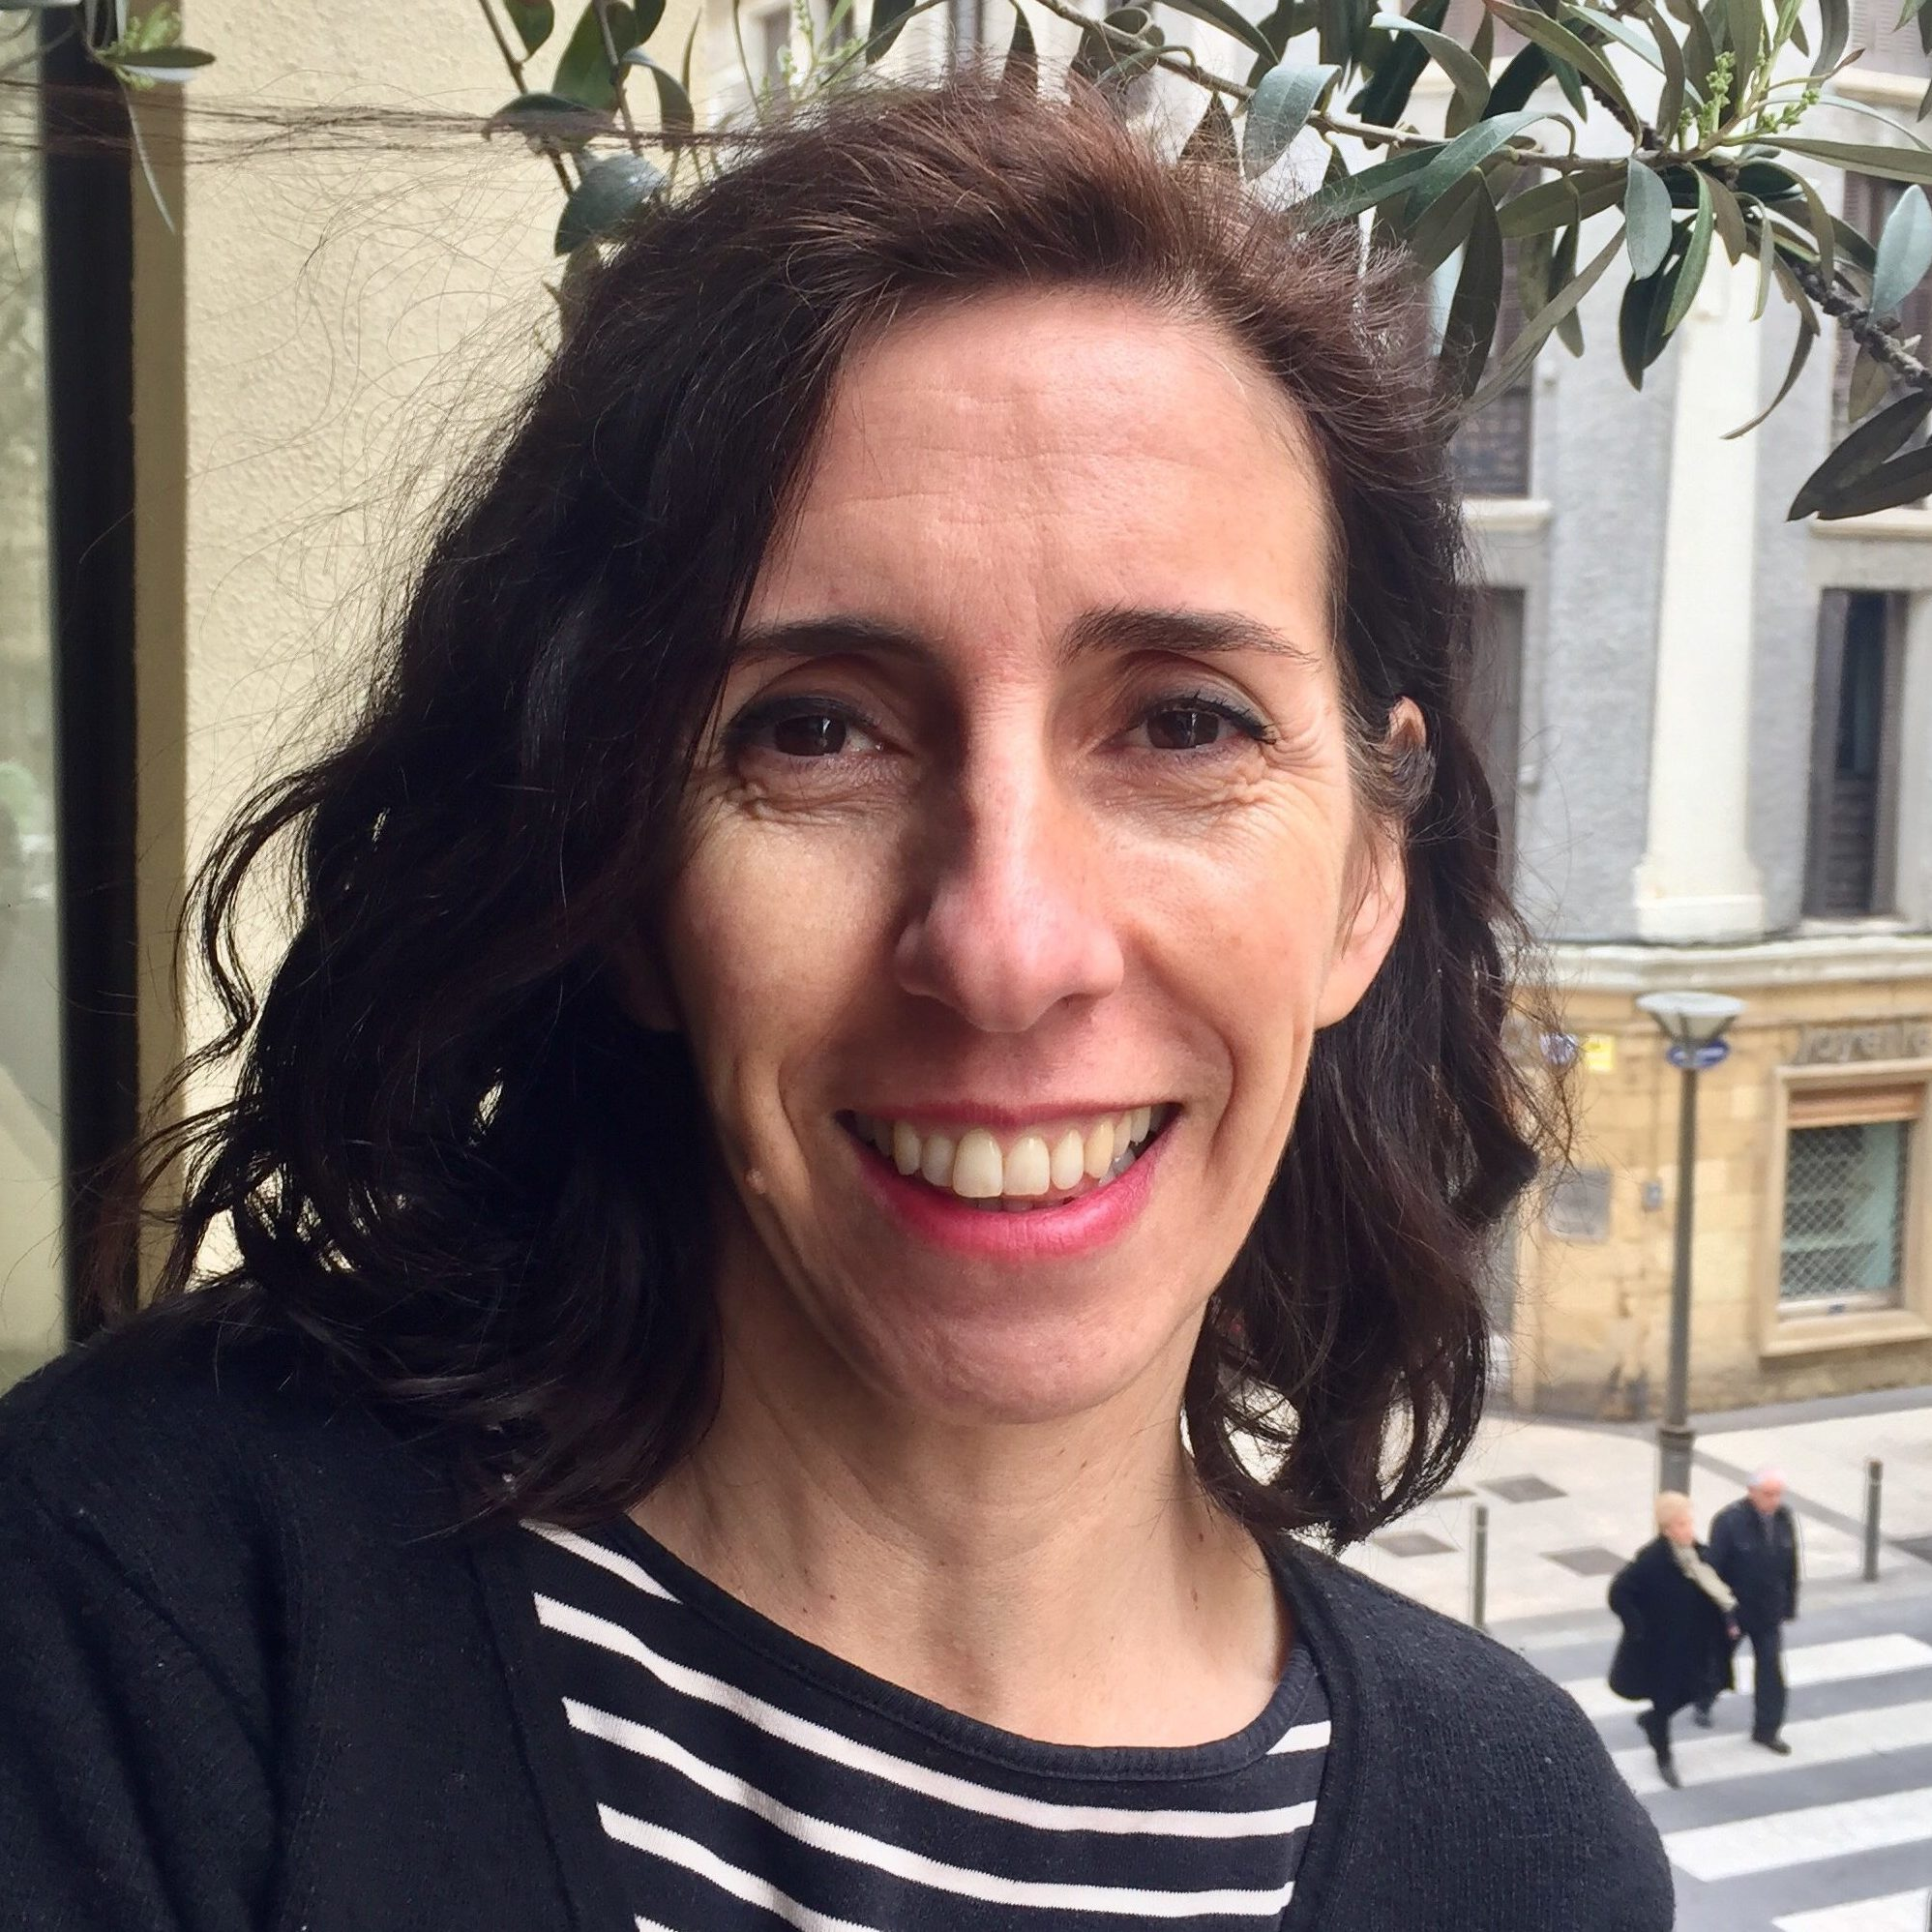 Miren Iosune Fernández Centeno joins the Consolidated Research Group